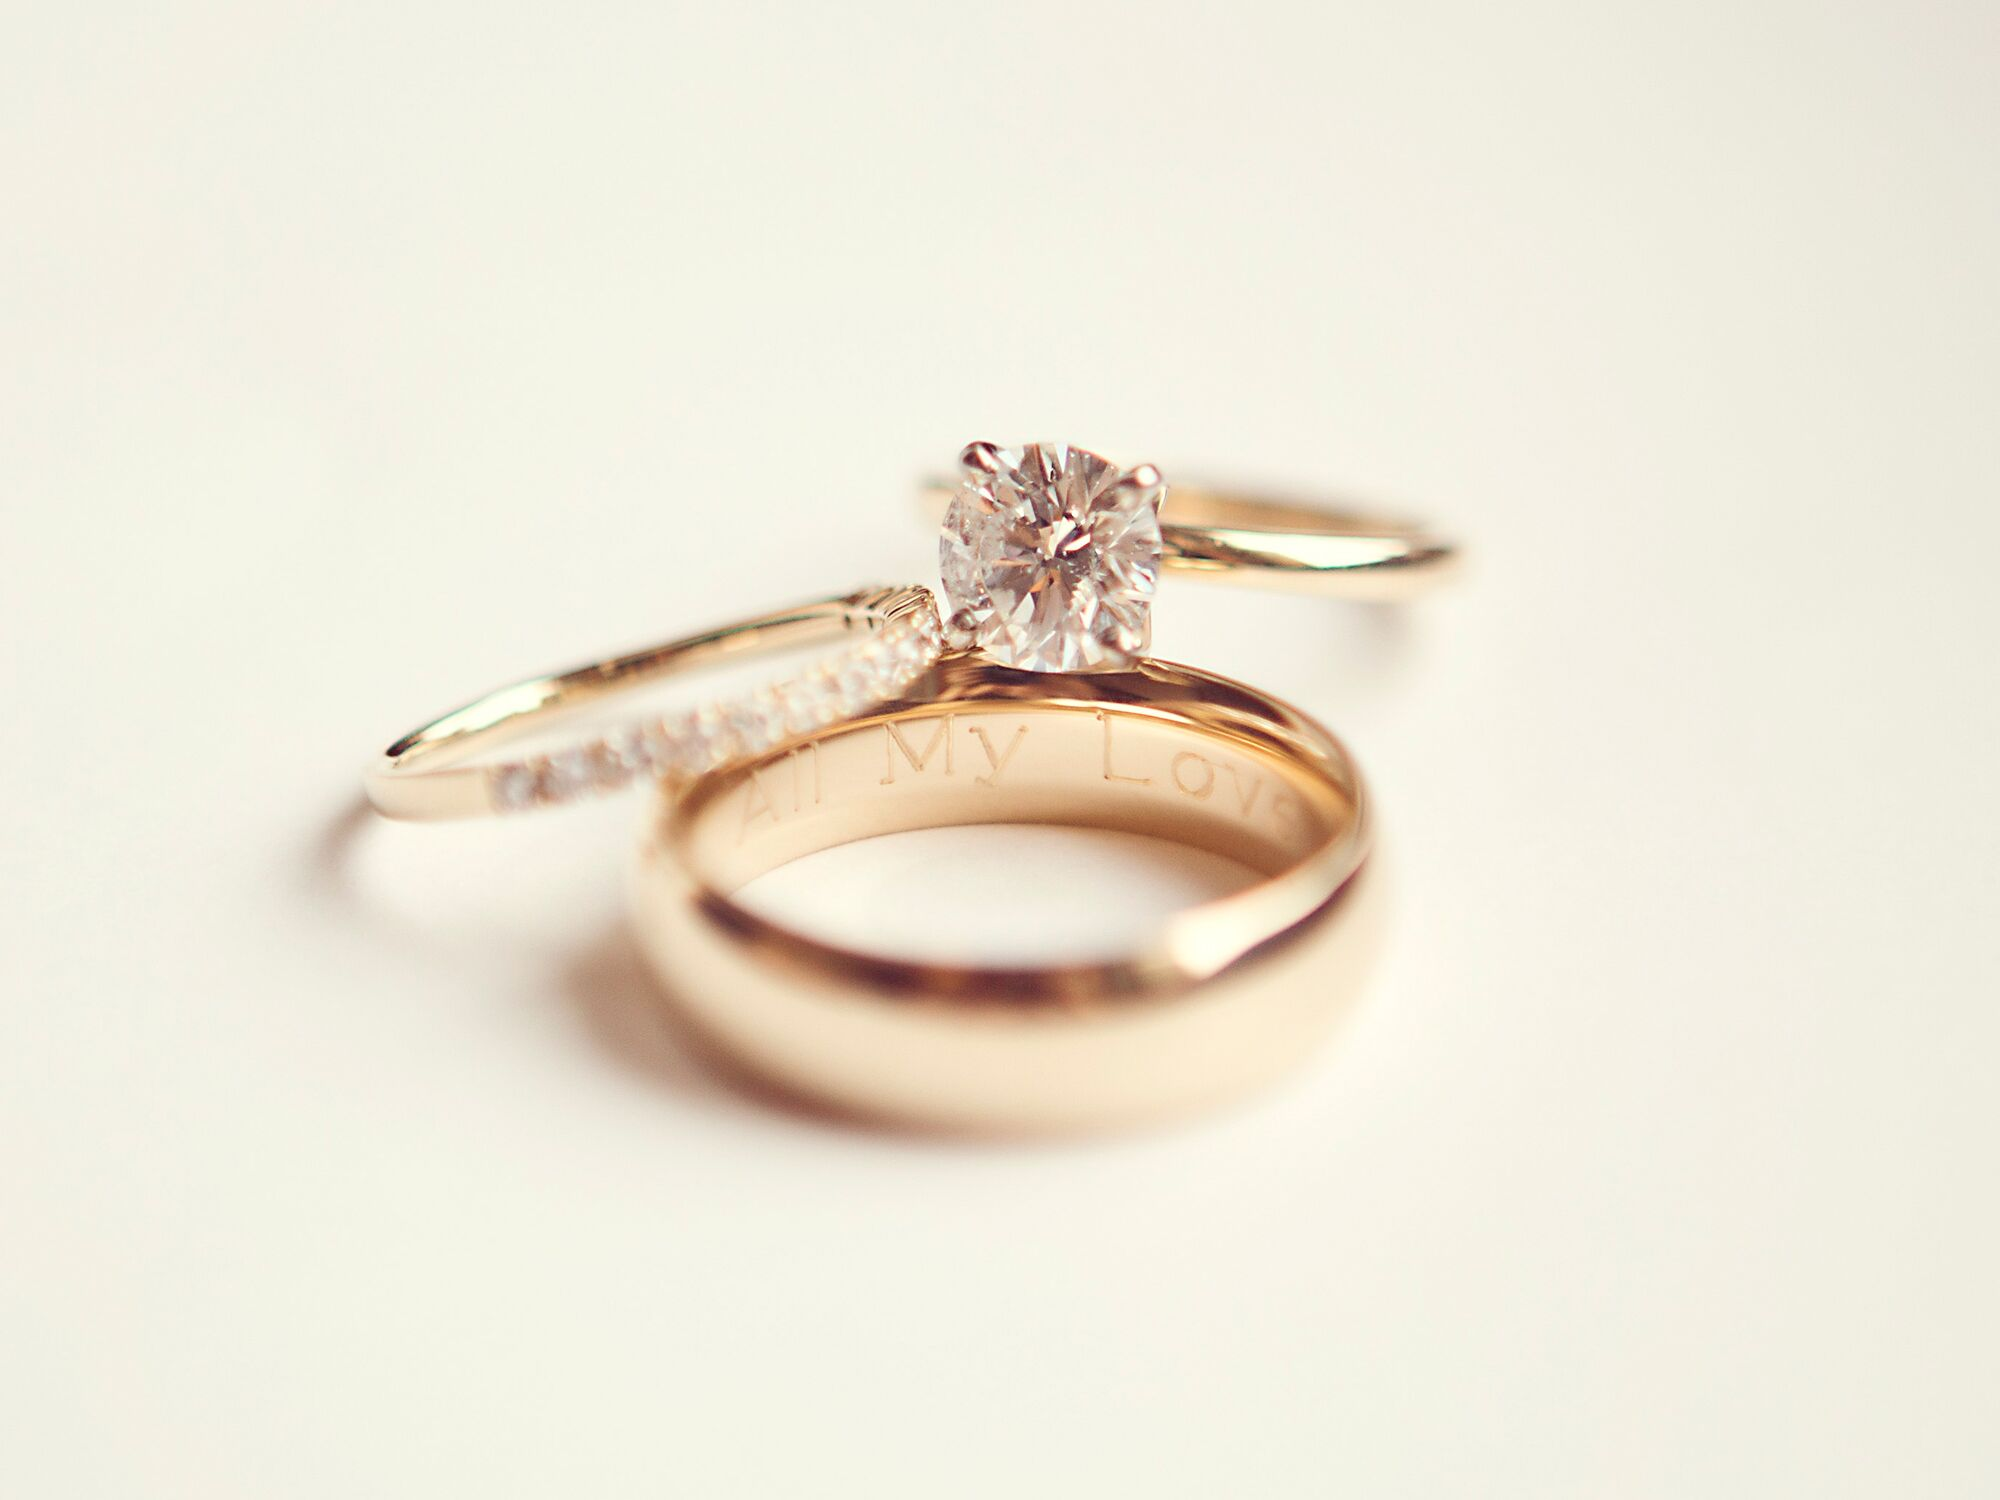 pics wedding lovely acde cool of engagement jewelry luxury on huge diamond tumblr ring creative rings